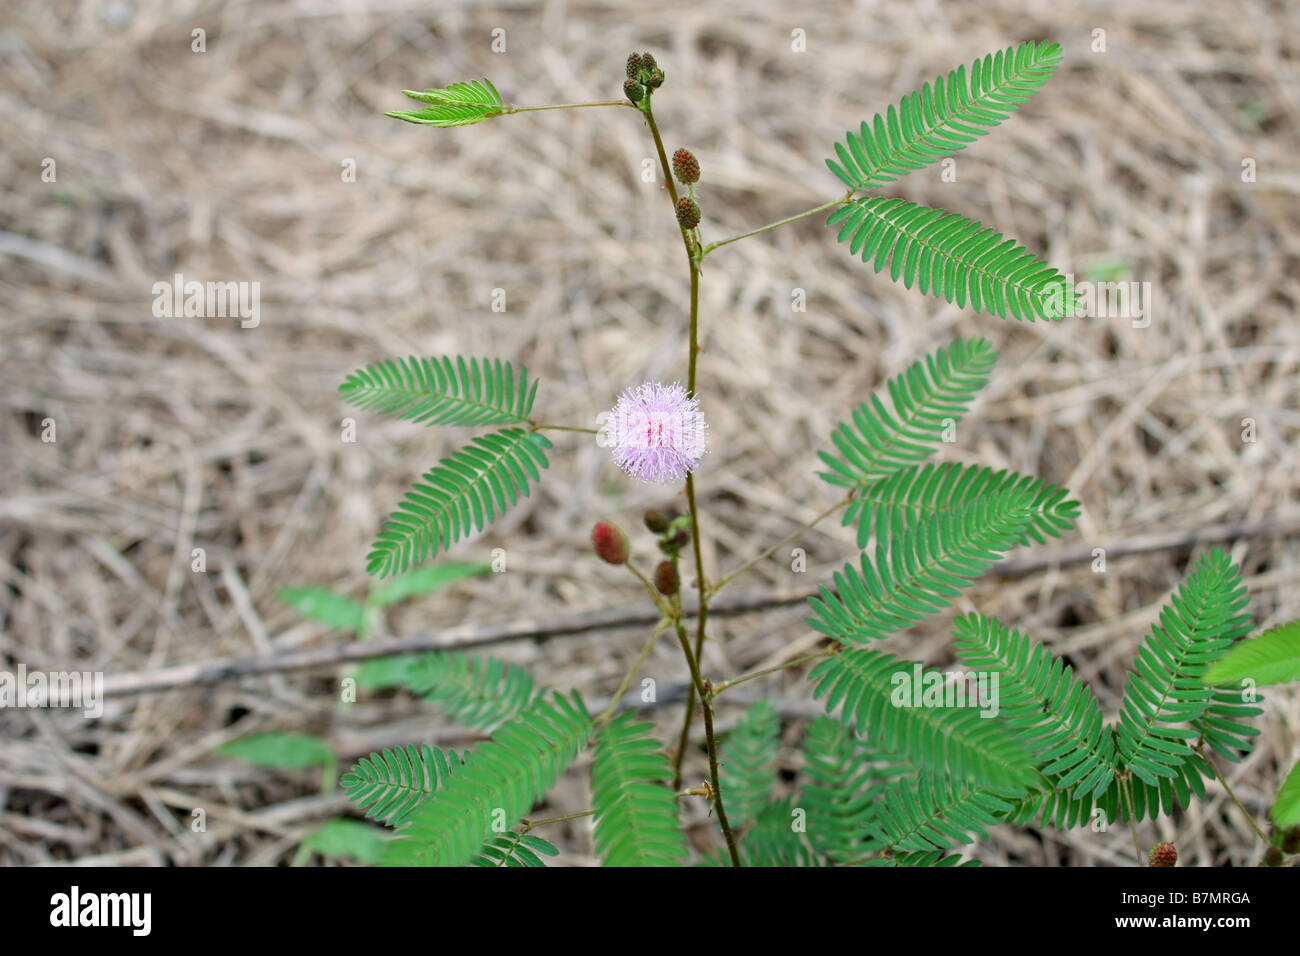 Touch me not plant mimosa Stock Photo